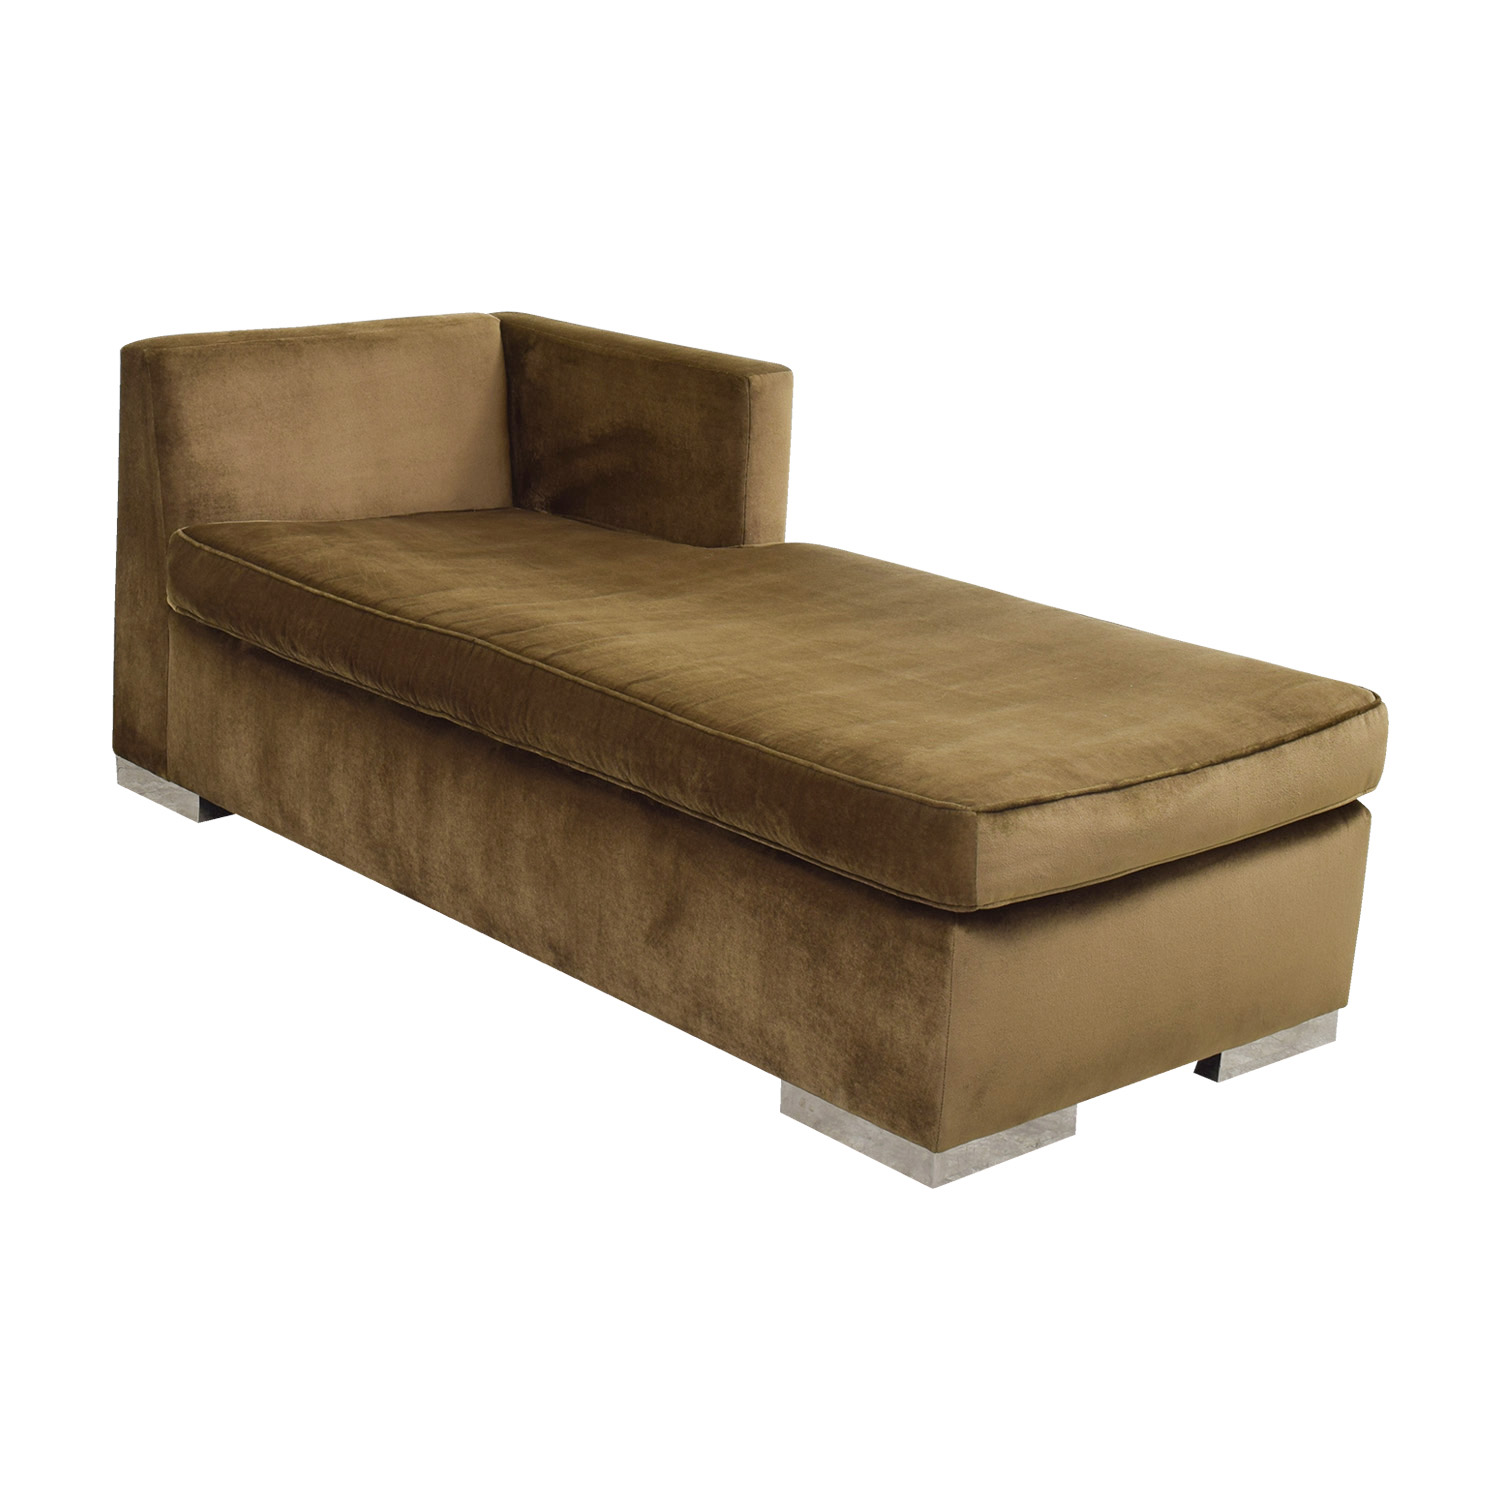 90 off leija designs leija designs brown mohair chaise lounger sofas. Black Bedroom Furniture Sets. Home Design Ideas